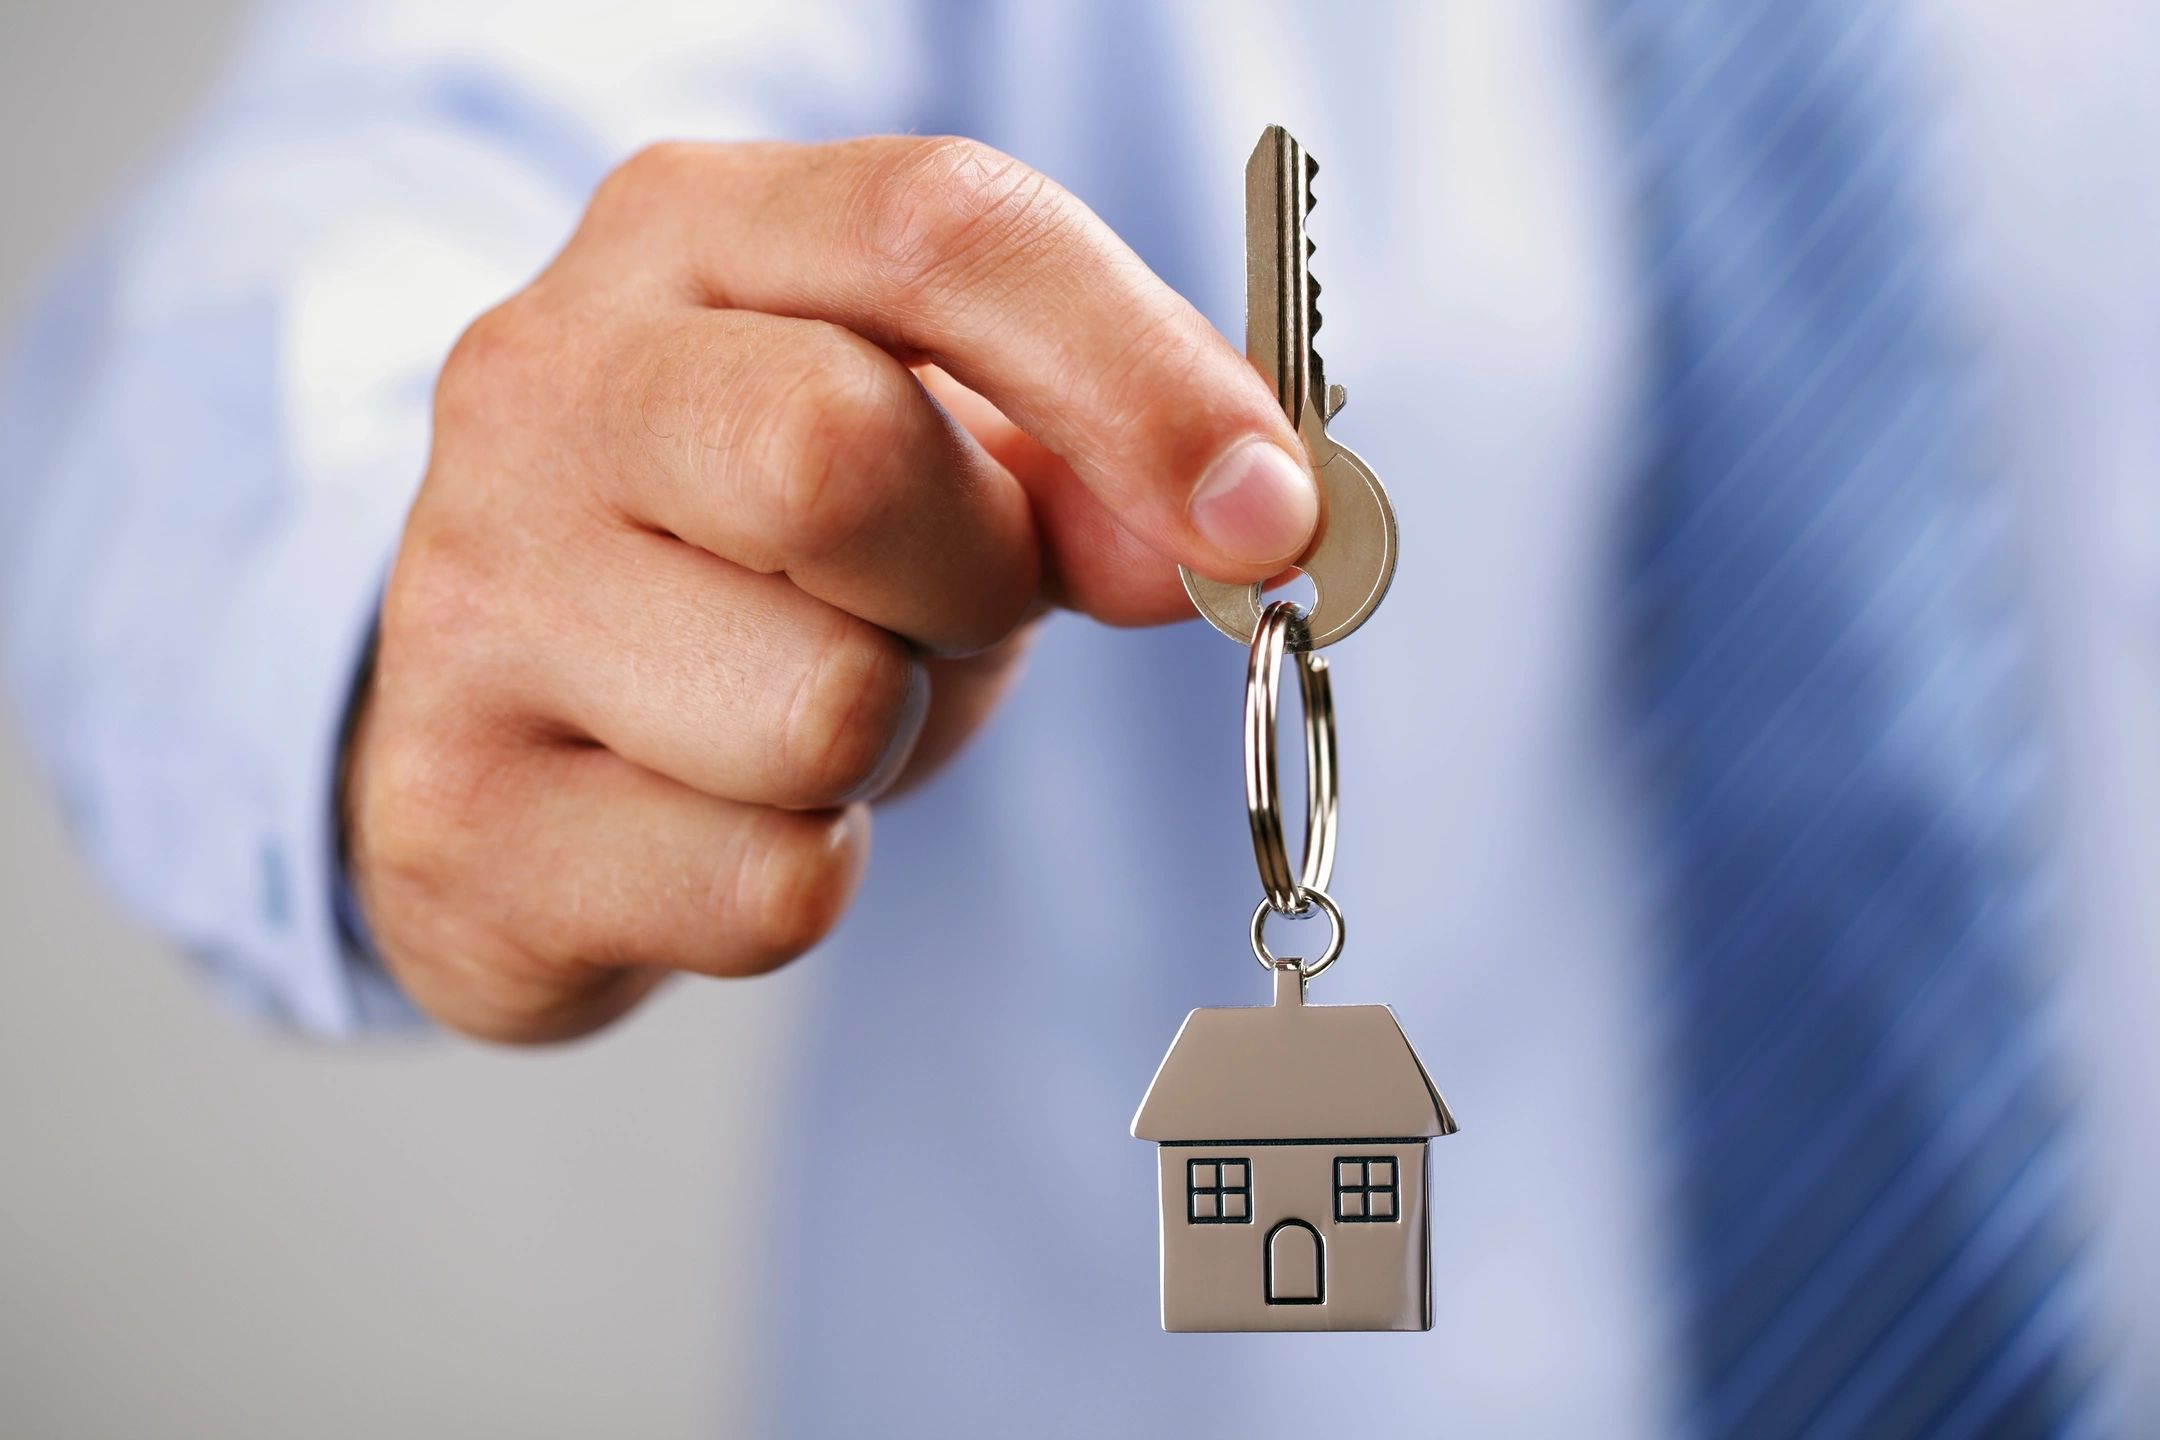 residential-locksmith-services-new